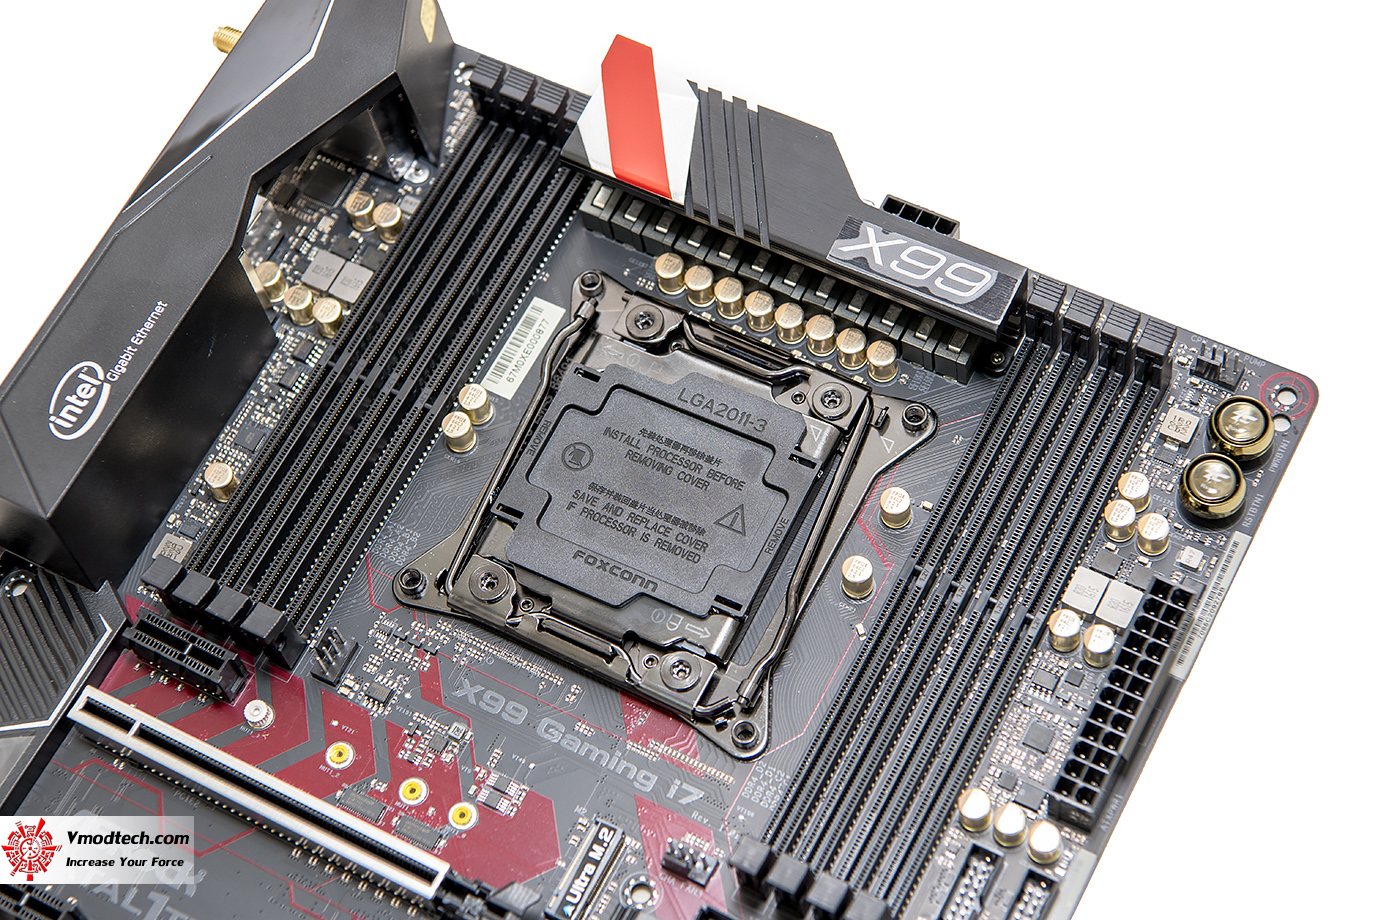 dsc 1970 ASRock Fatal1ty X99 Professional Gaming i7 Motherboard Review